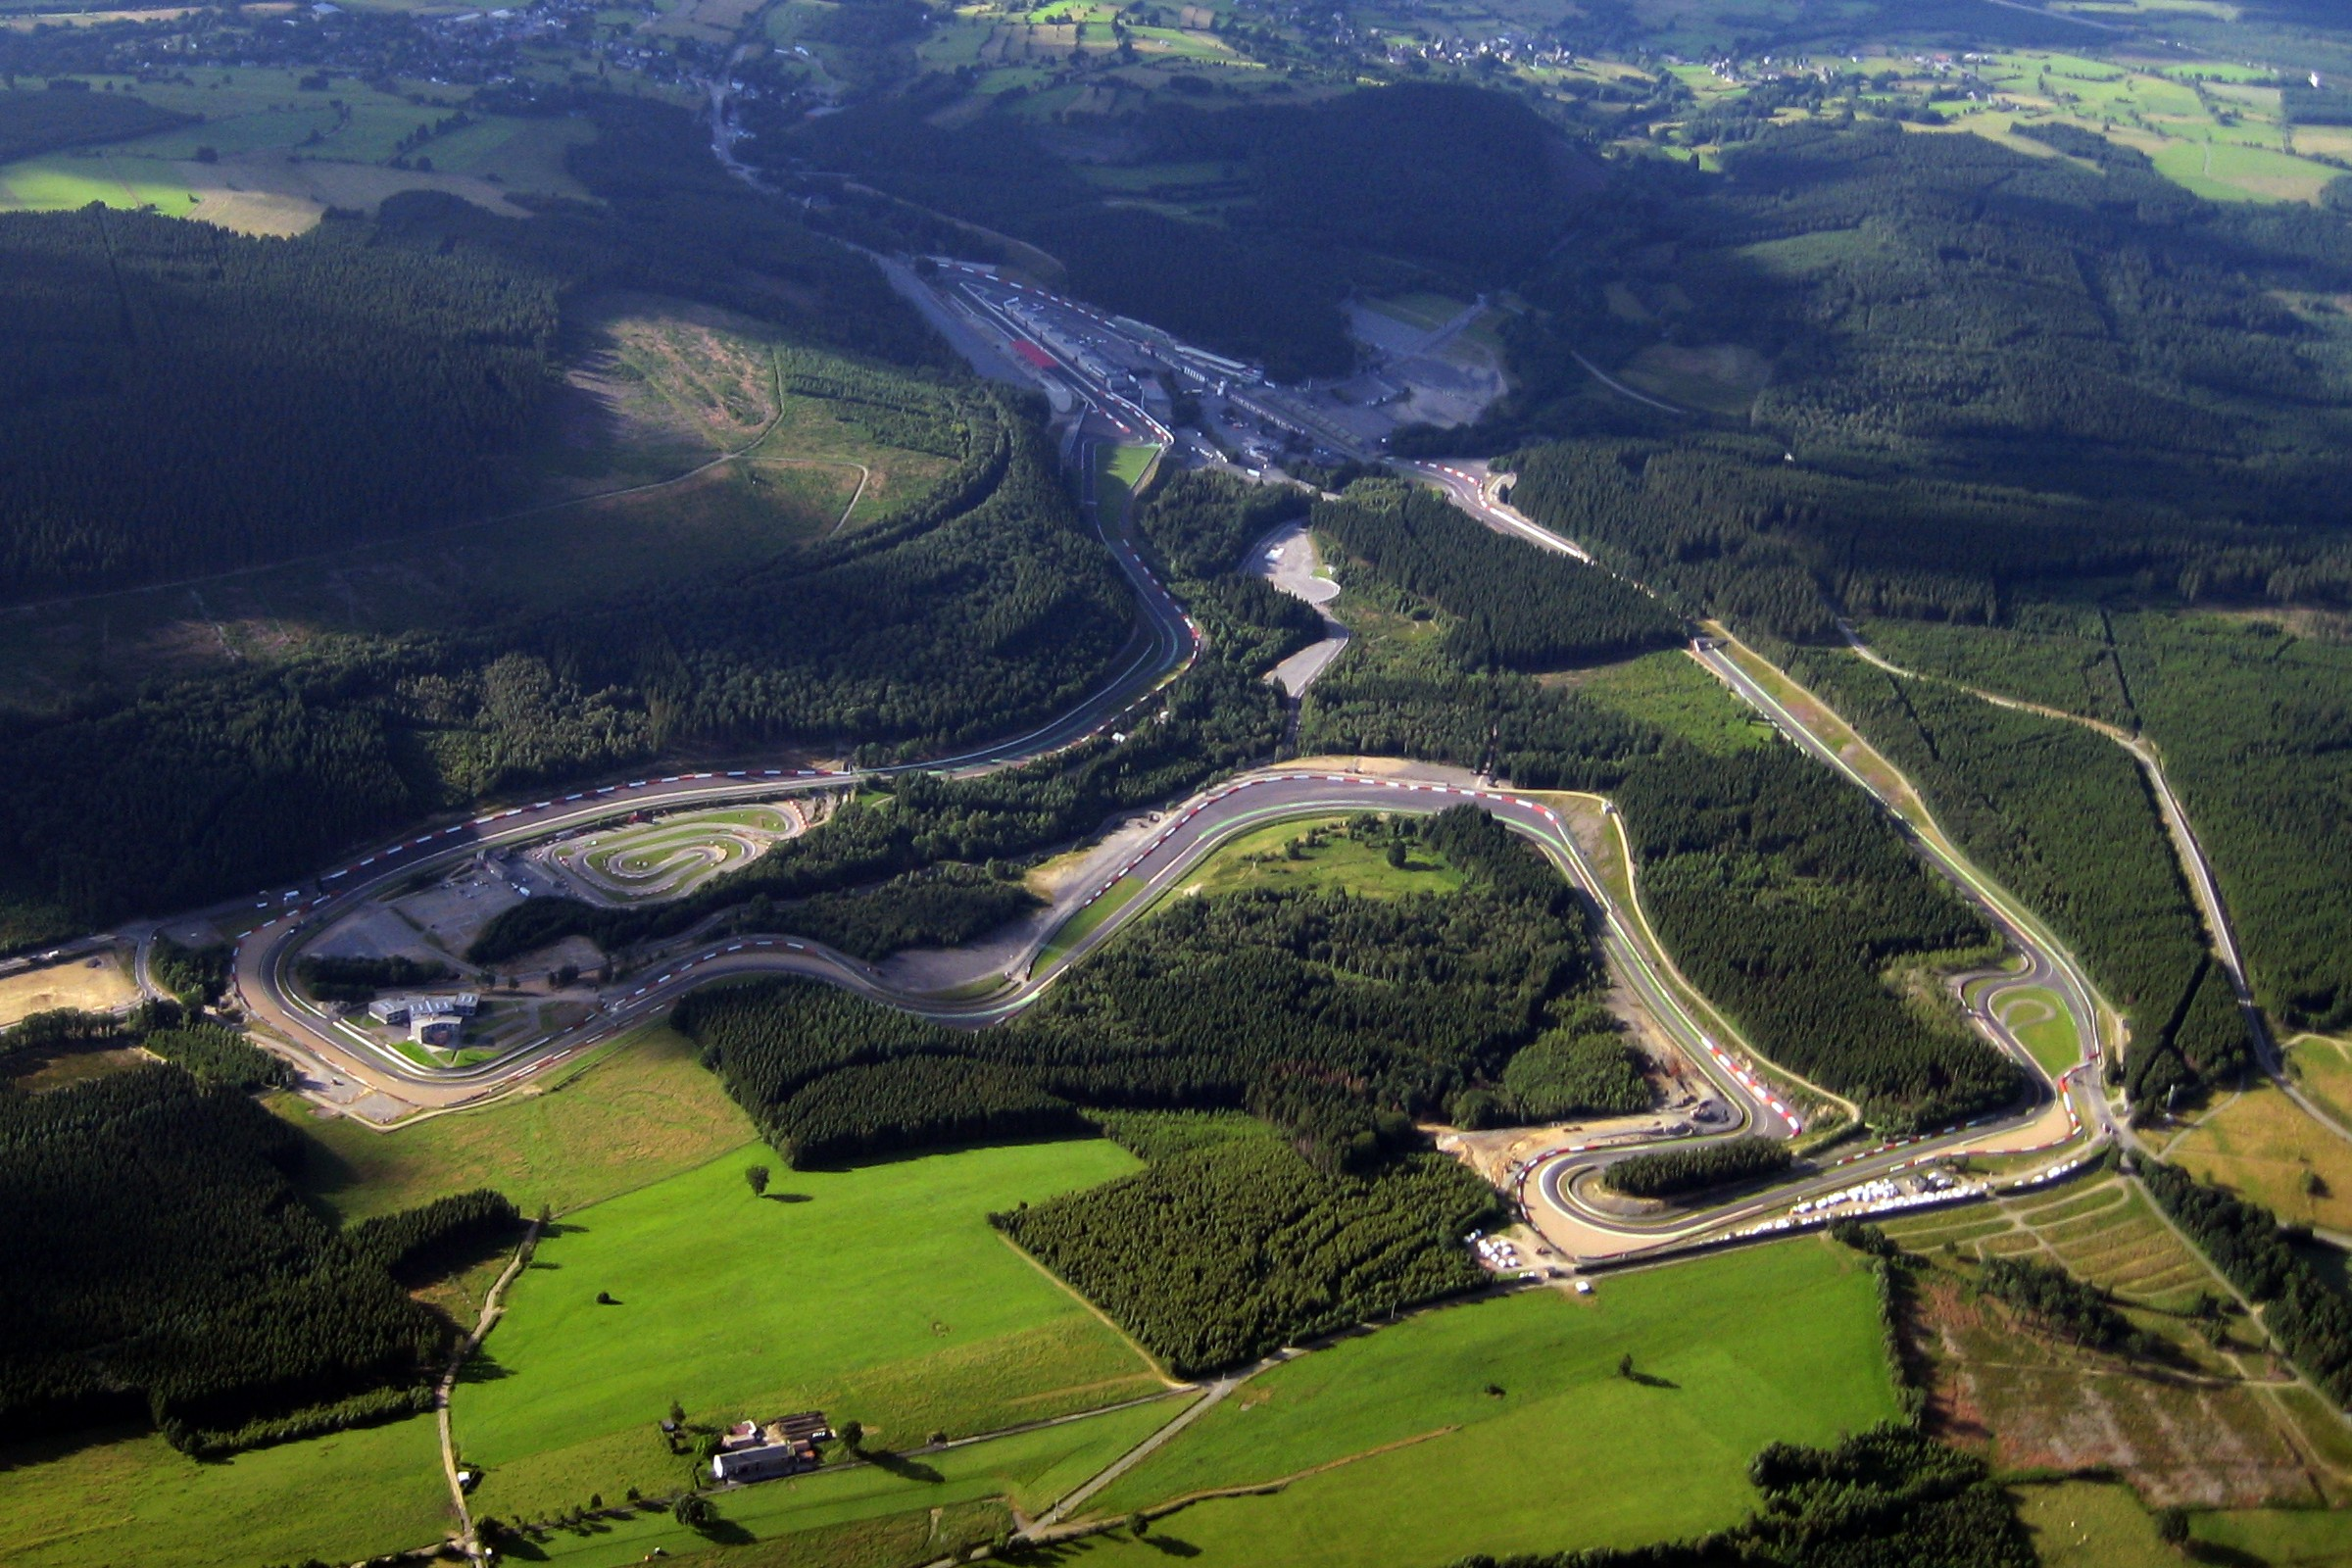 An overview of the dashing Spa-Francorchamps circuit